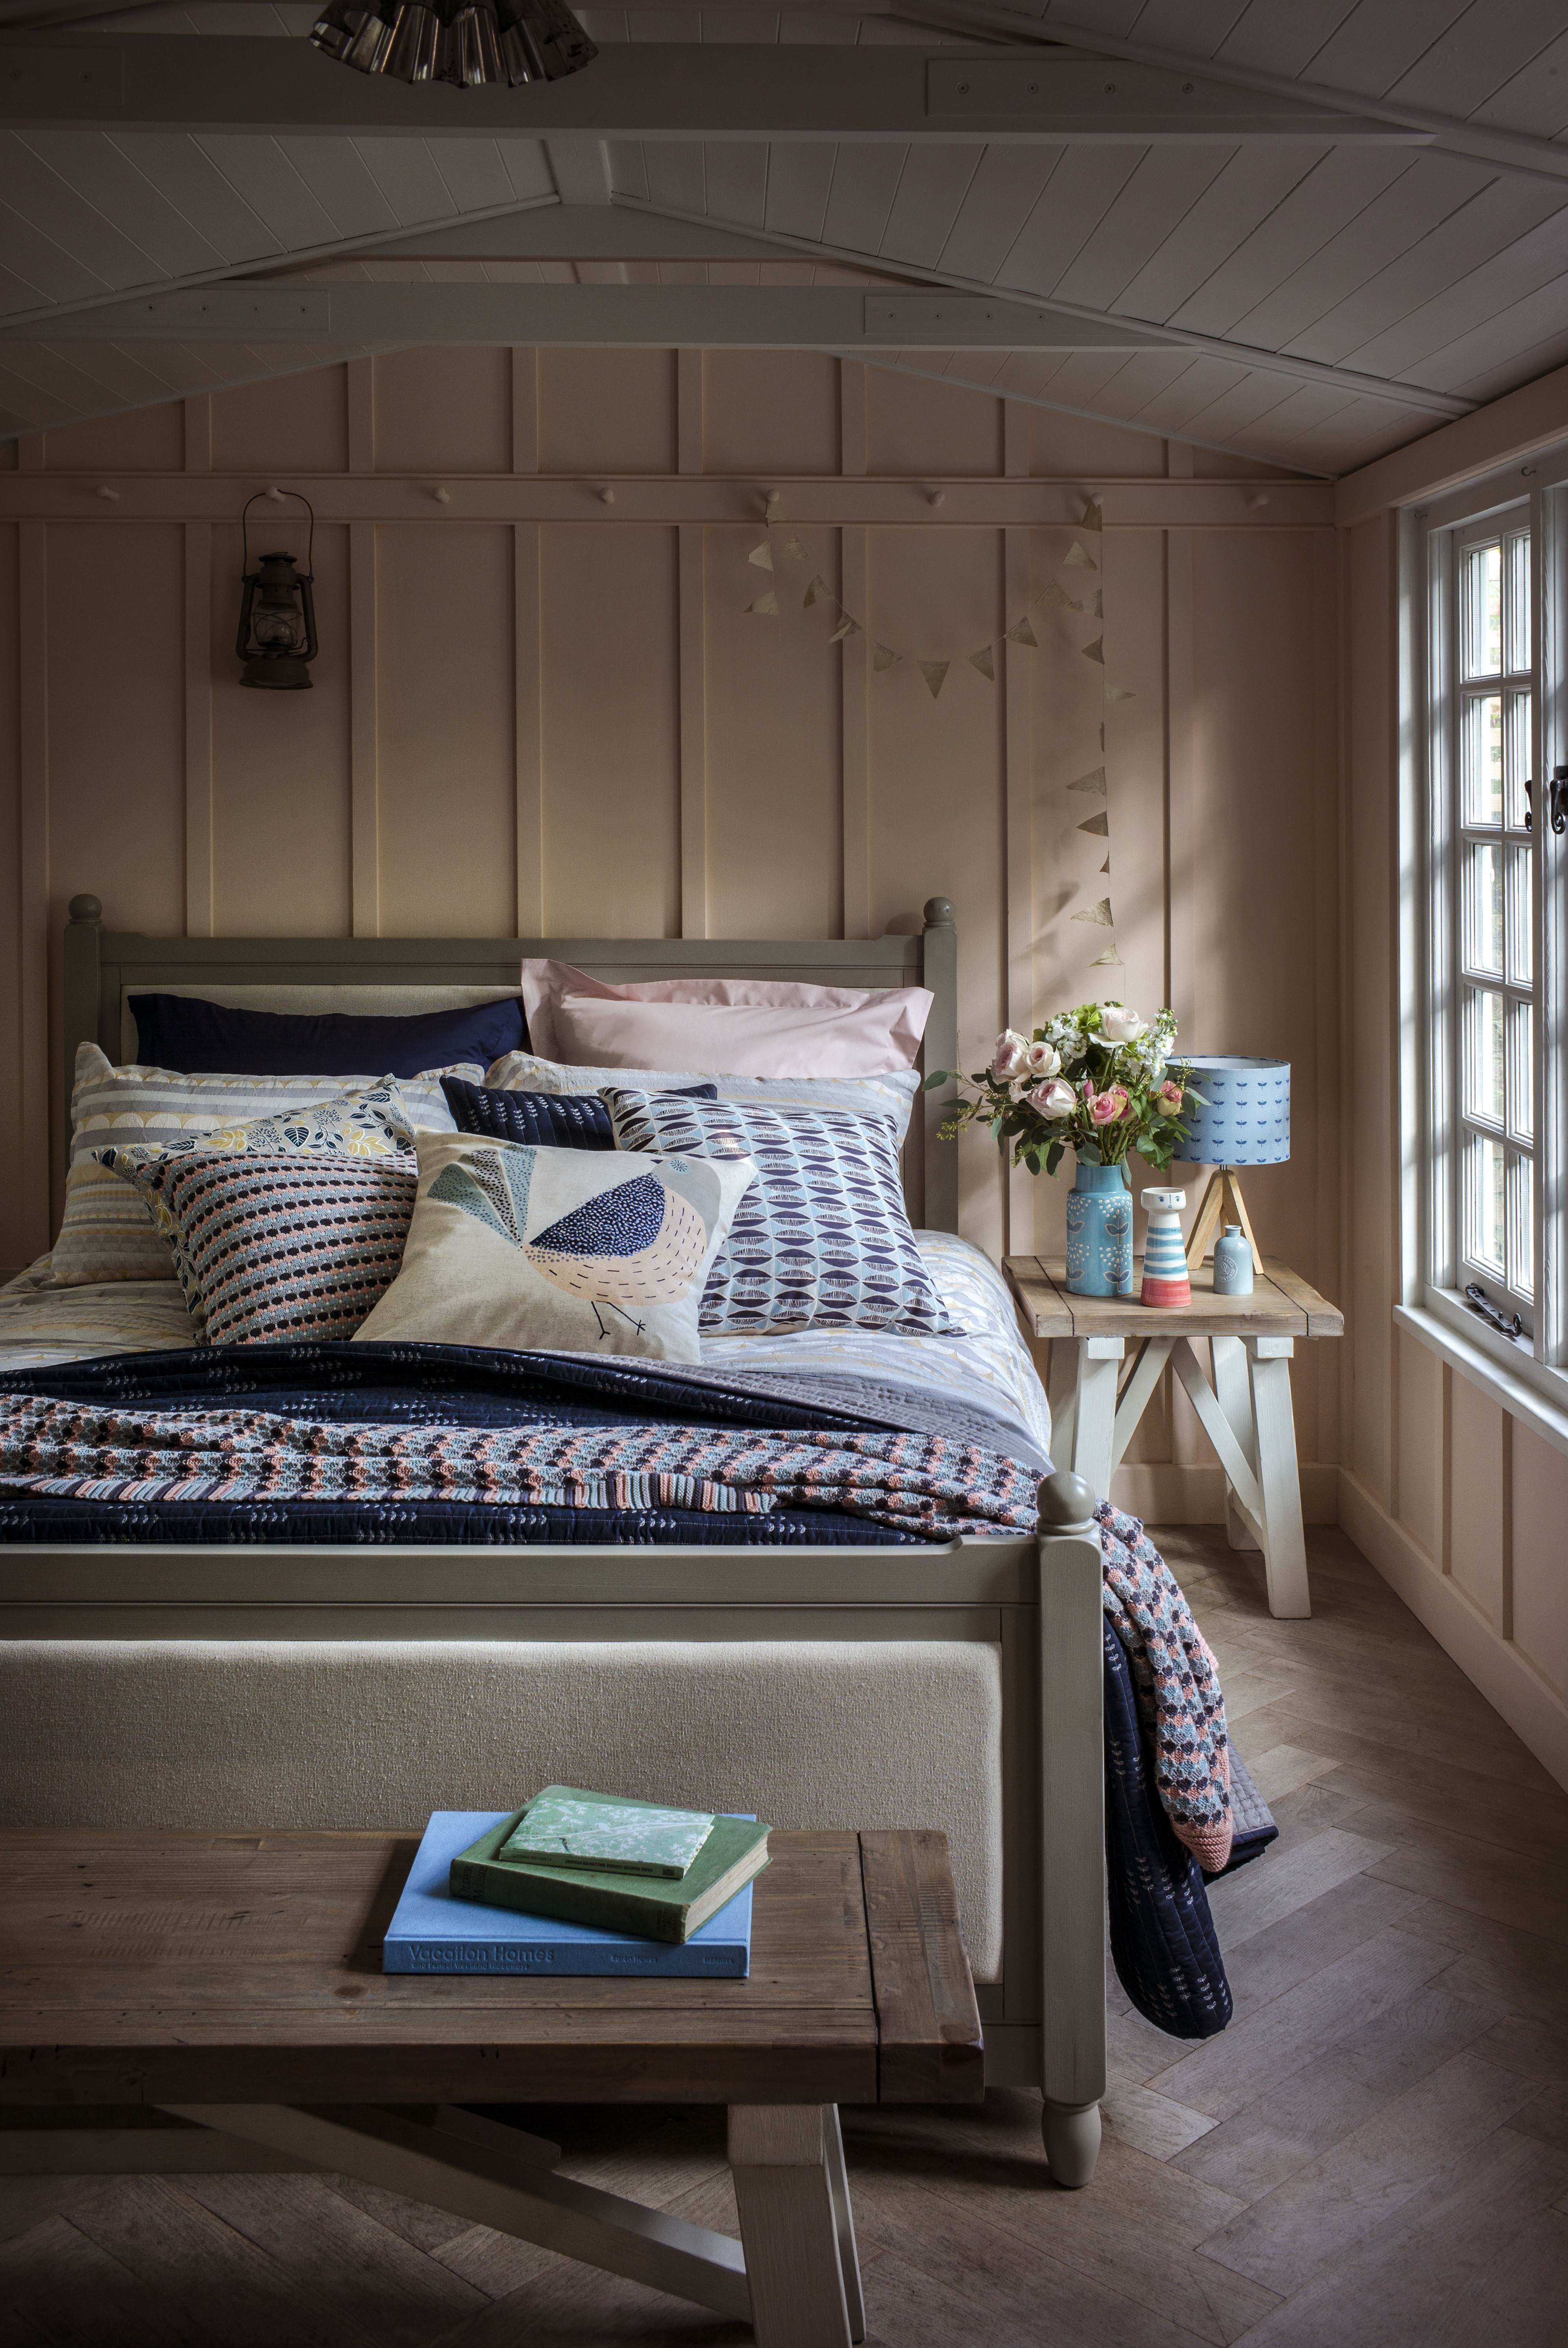 Cure Your January Blues With These Super Cosy Bedroom Ideas